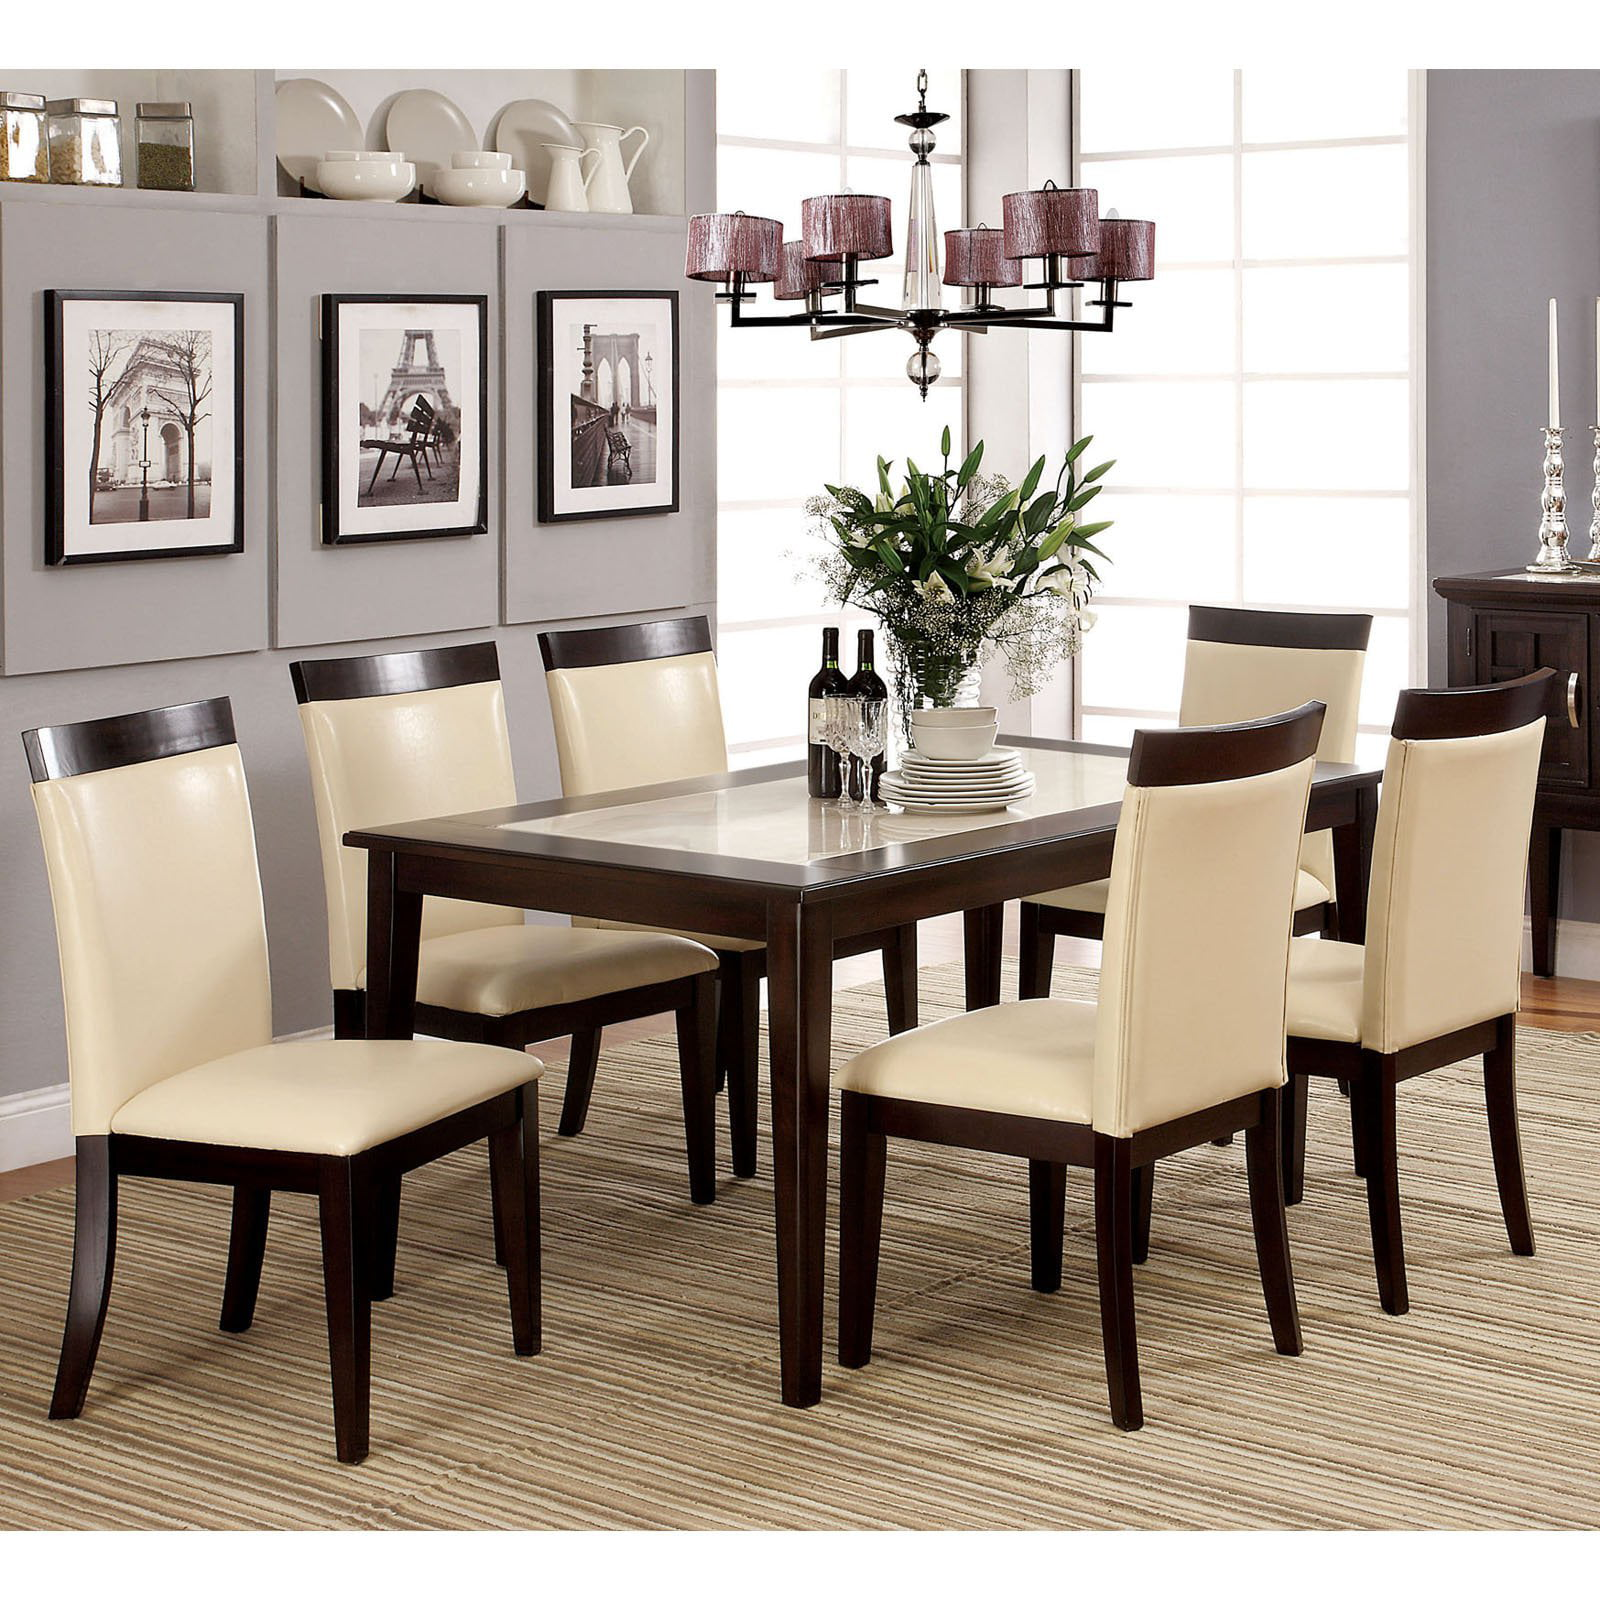 Dorel Living Shiloh 5 Piece Rustic Dining Set Walmart